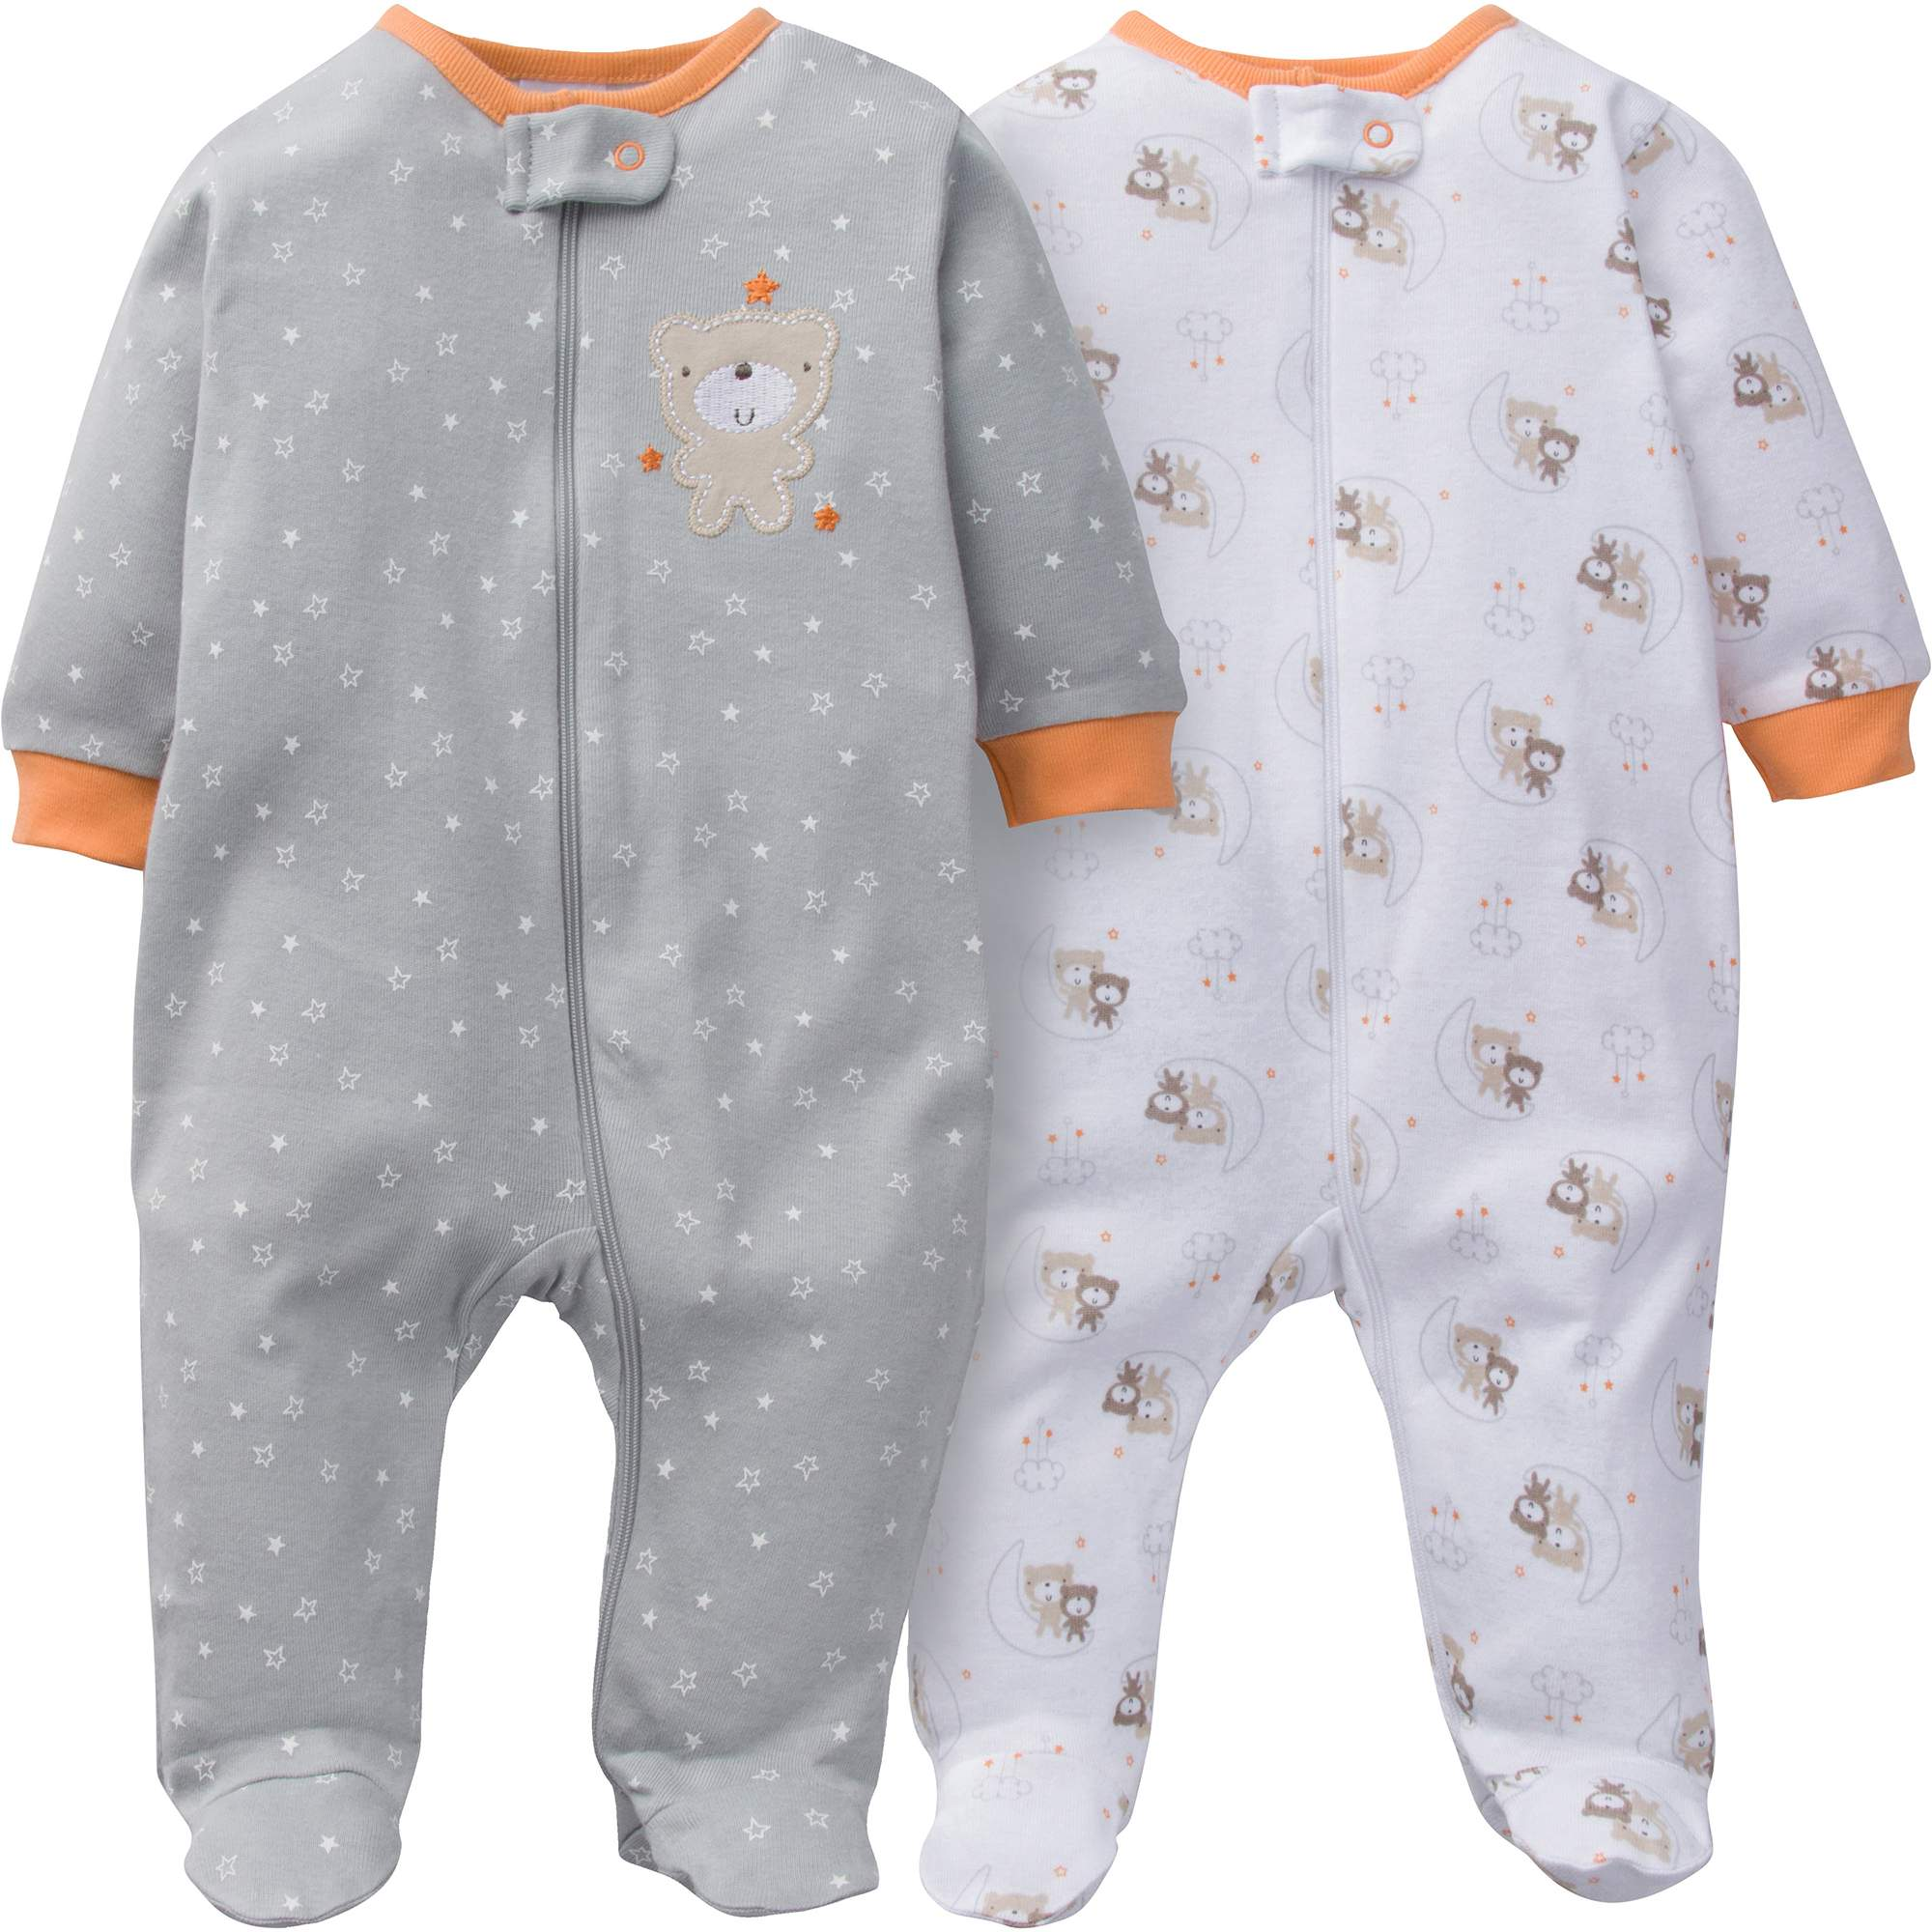 Image of Gerber Newborn Baby Boy or Girl Unisex Zip Front Sleep N Play, 2-Pack